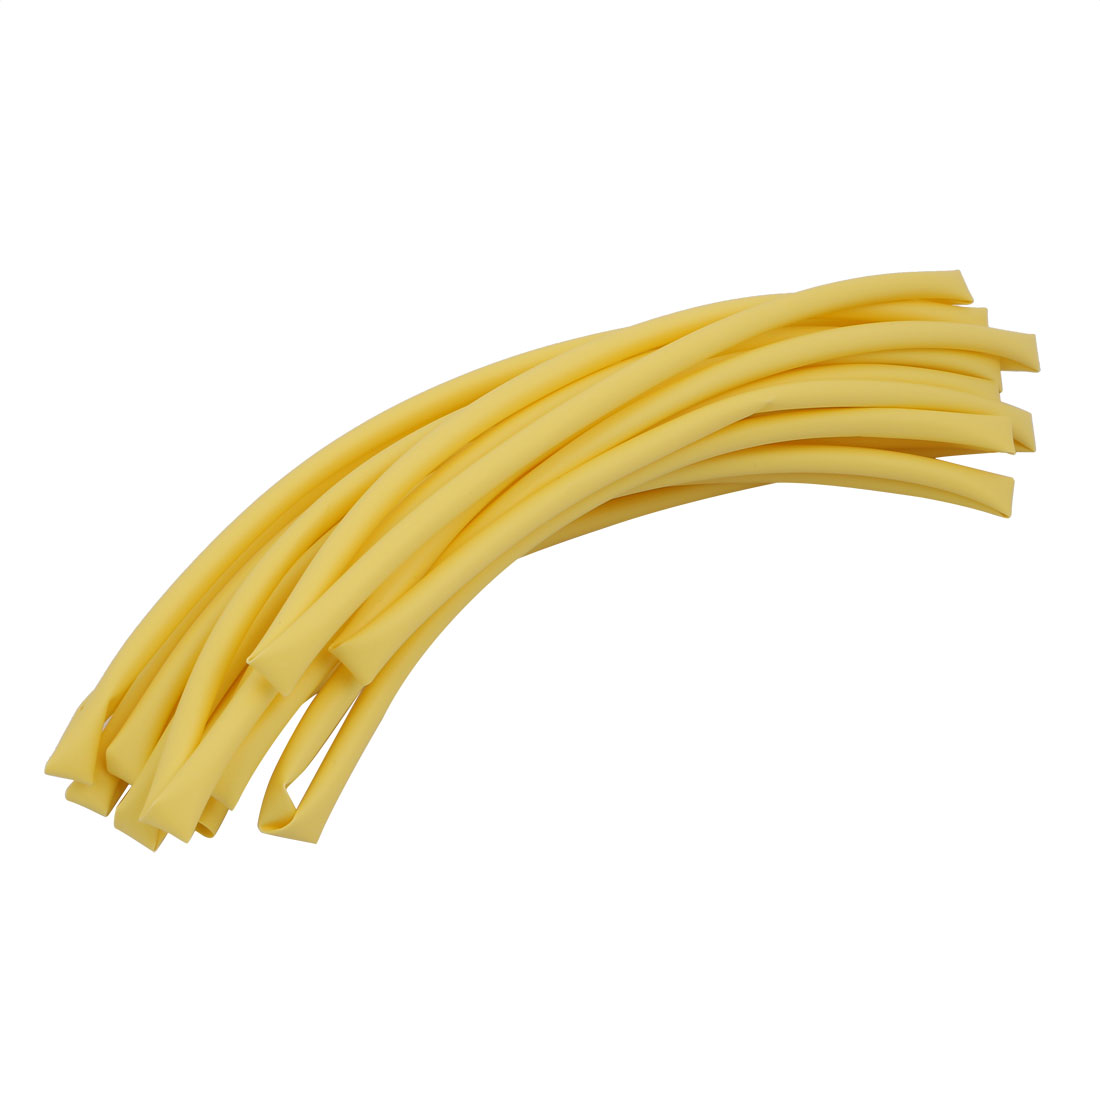 5M x 0.2in Inner Dia Polyolefin Flame Retardant Tube Yellow for Wire Repairing